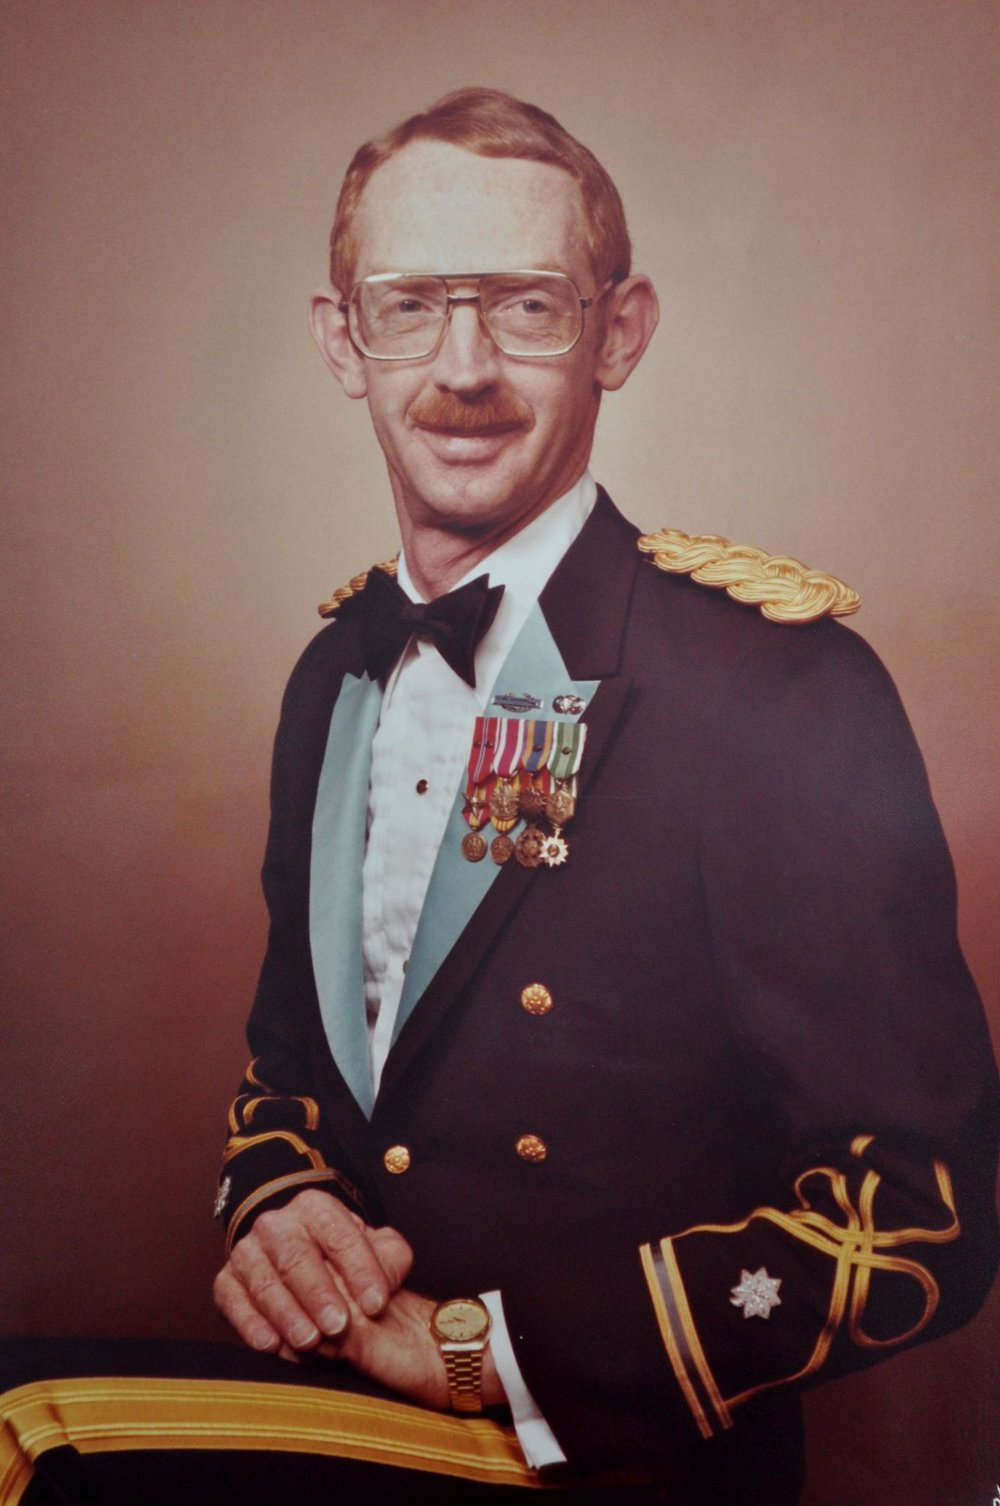 Dad in his dress uniform. He taught me many things just through how he lived, and he continues to teach me things even though he's been gone for 10 years.